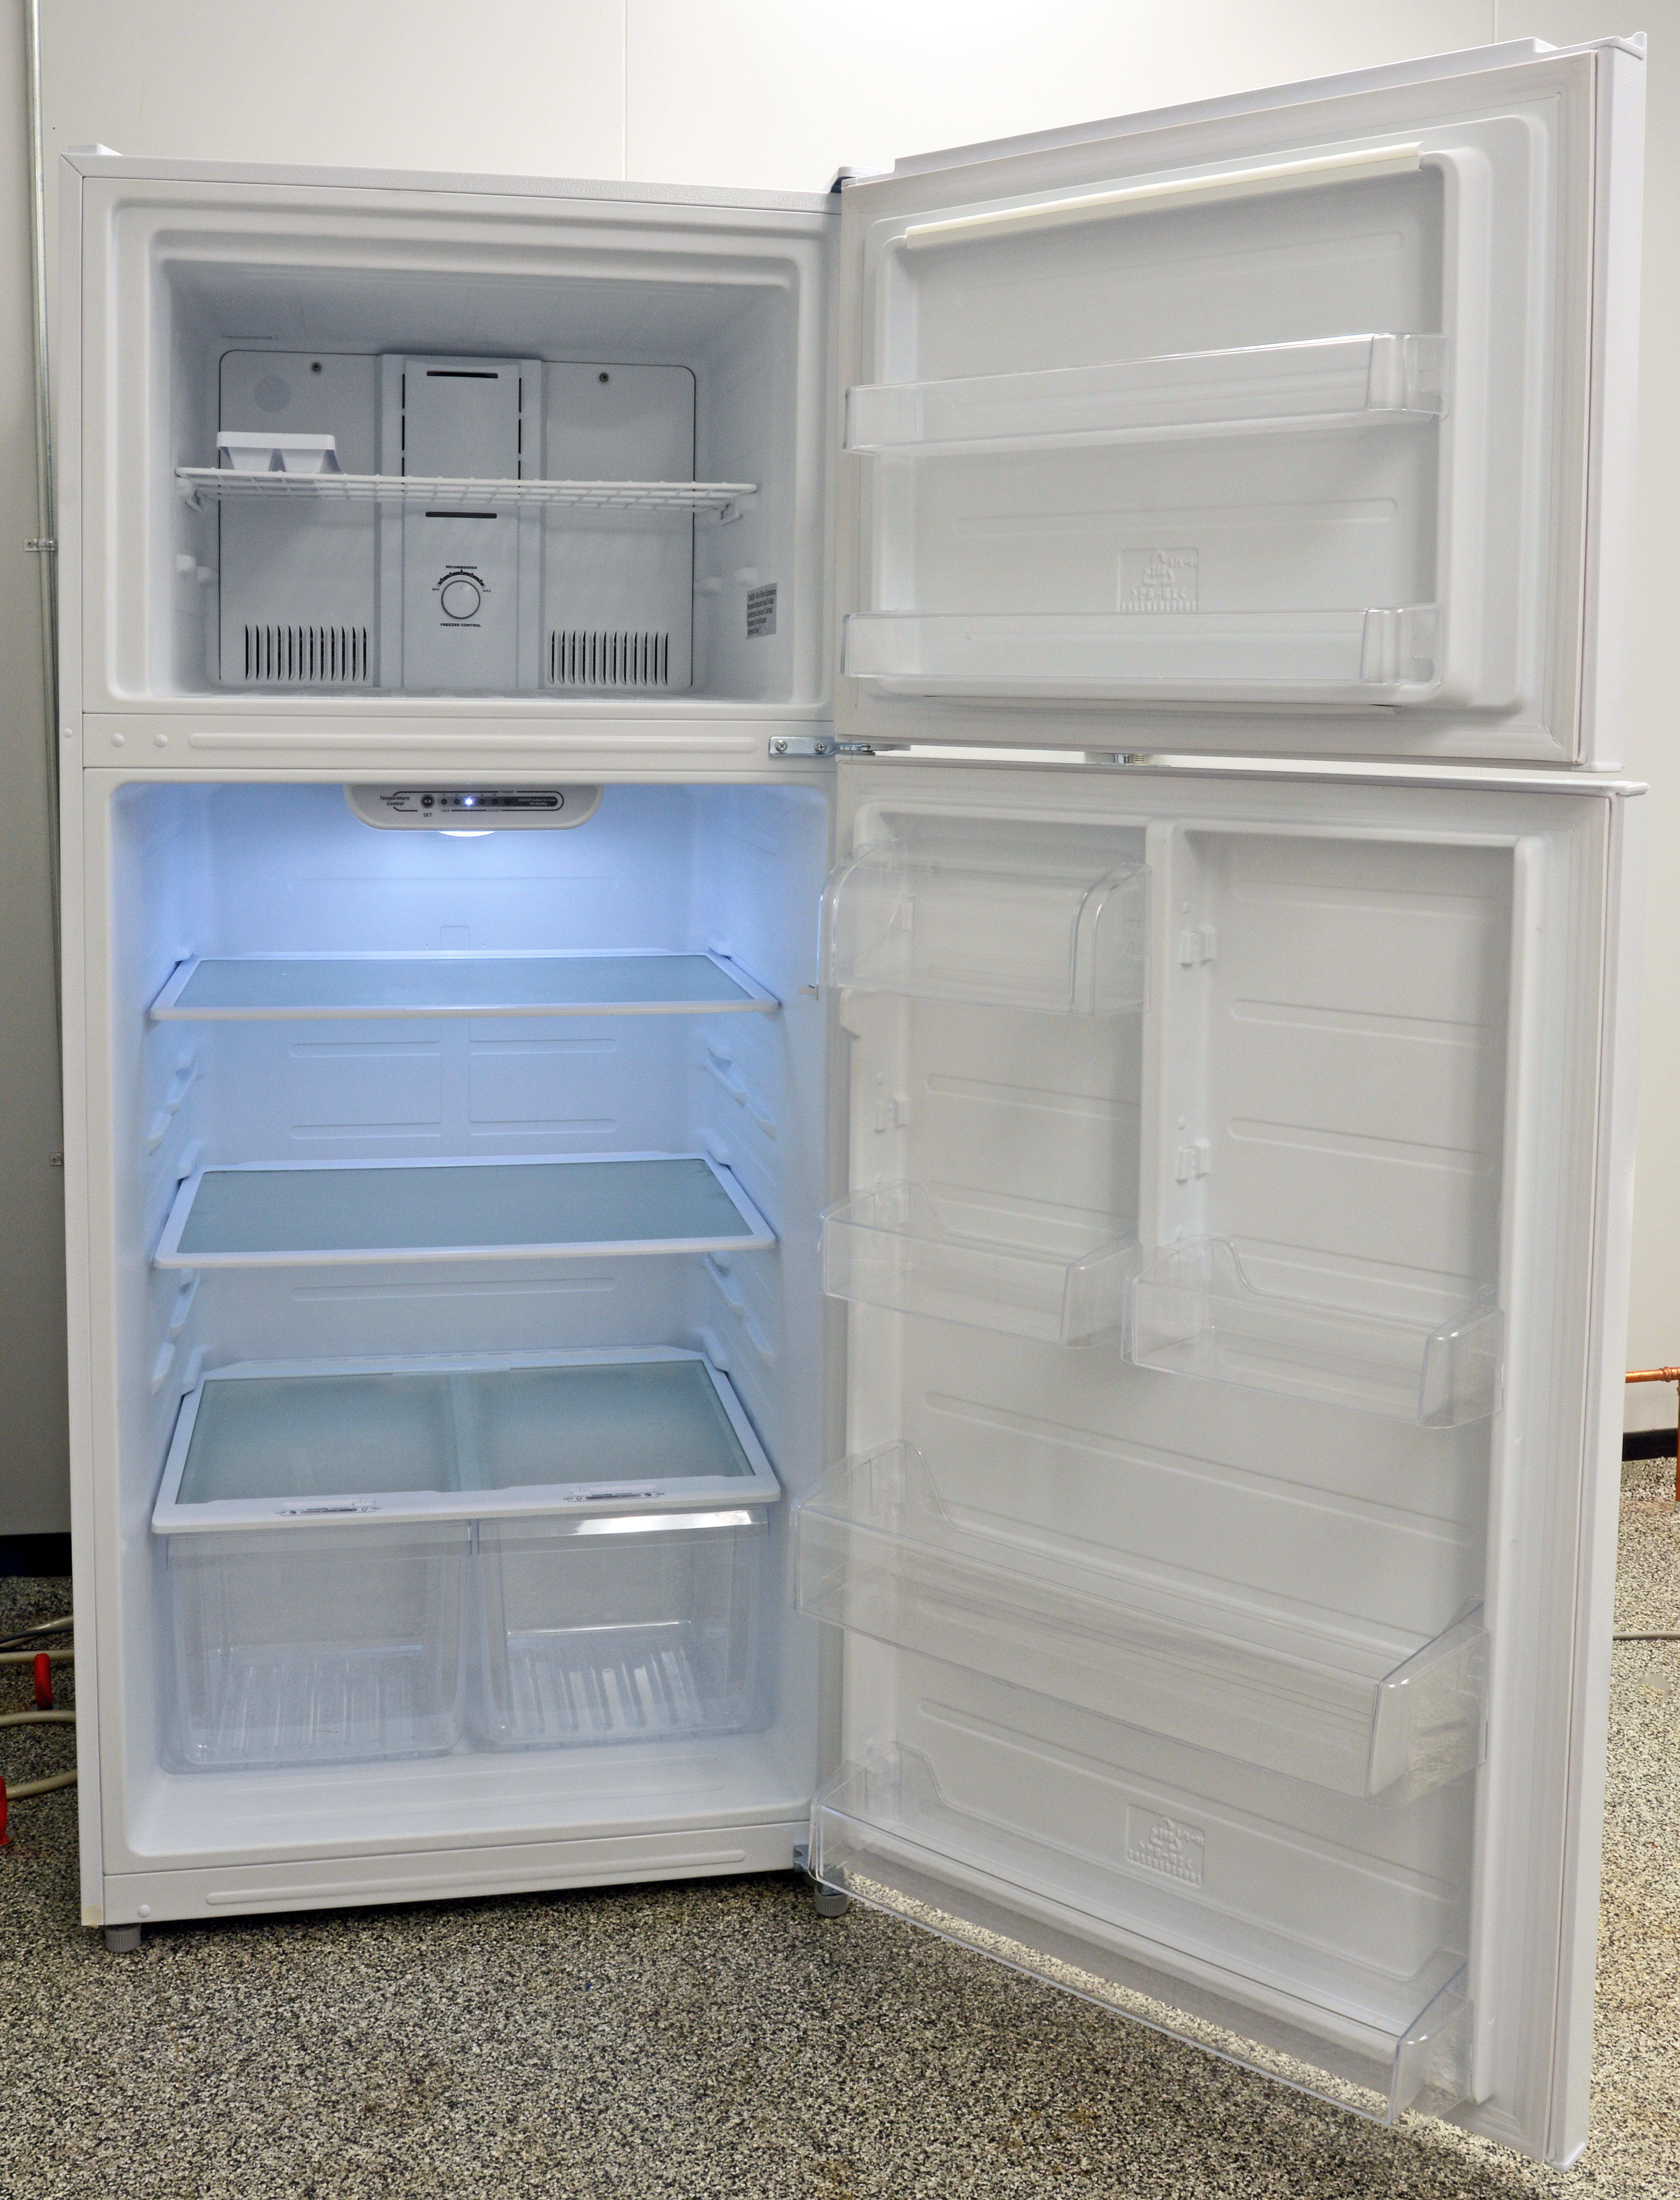 This basic appliance is a great deal, but it's better suited as a second, supplemental fridge for large families.